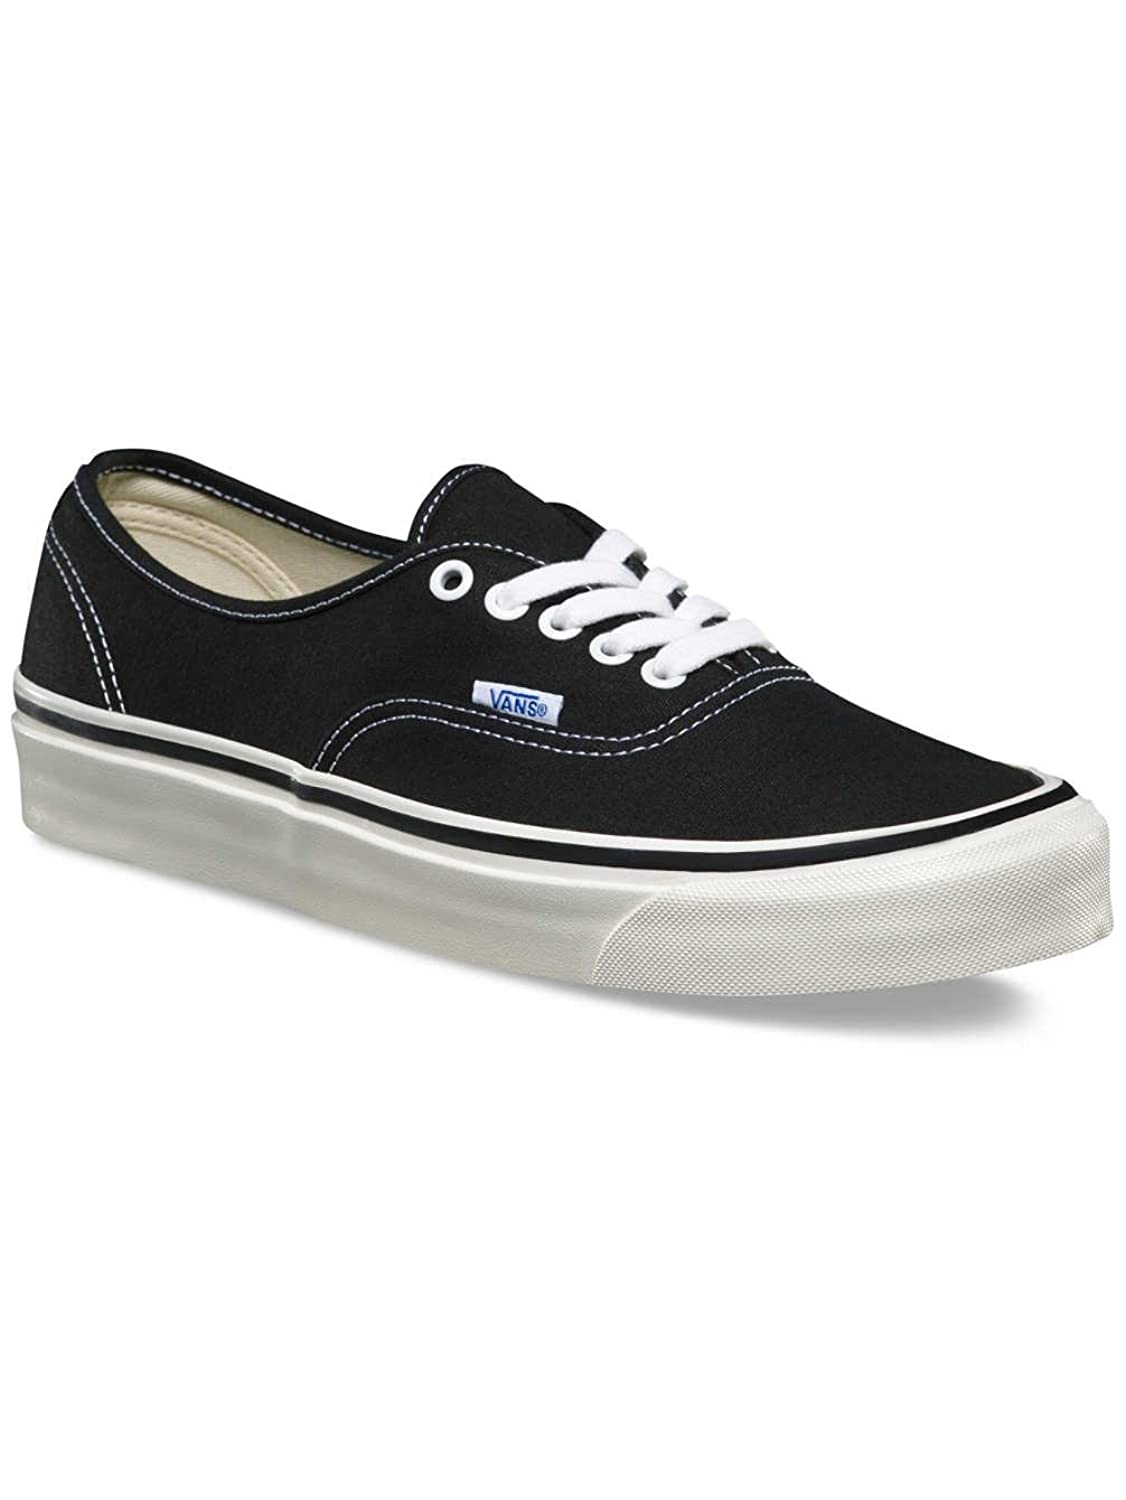 warehouse deals vans 44